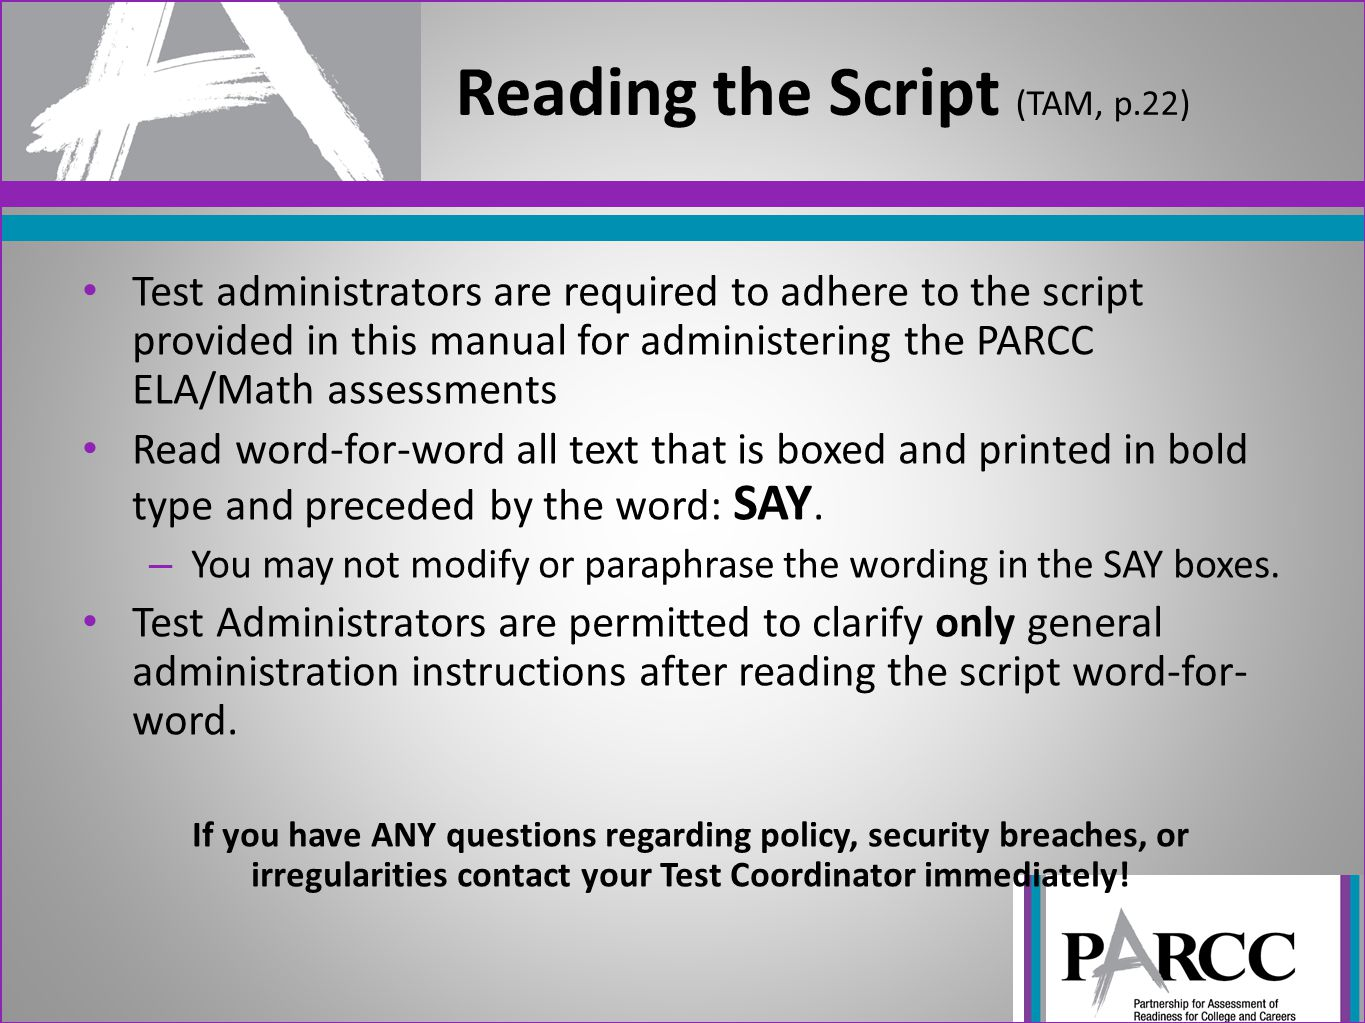 Test administrators are required to adhere to the script provided in this manual for administering the PARCC ELA/Math assessments Read word-for-word all text that is boxed and printed in bold type and preceded by the word: SAY.